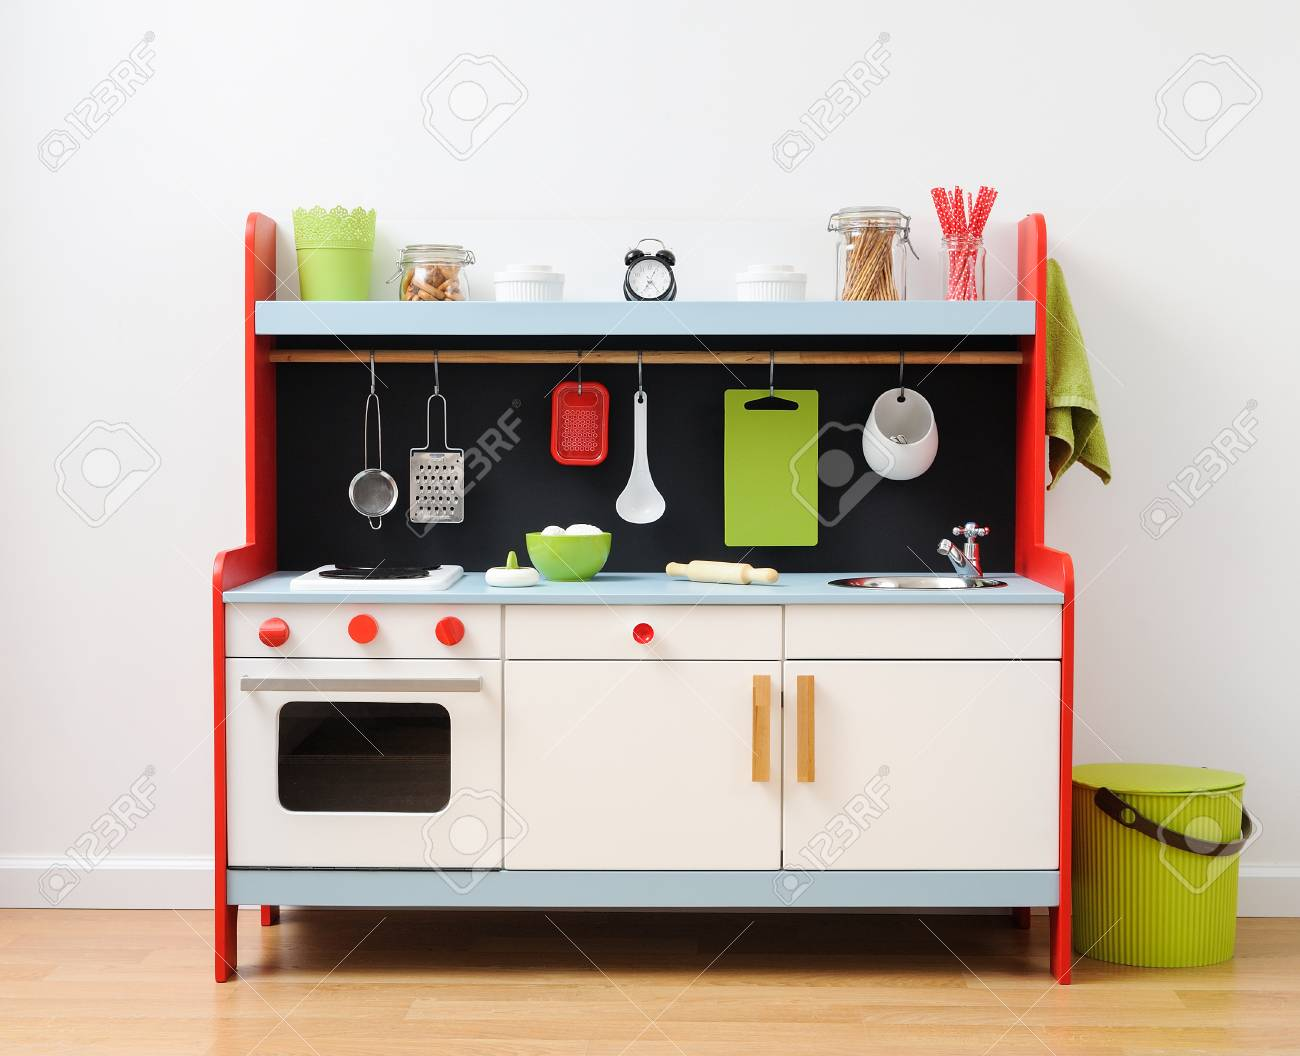 Colorful toy kitchen with kitchen utensils ready for children..